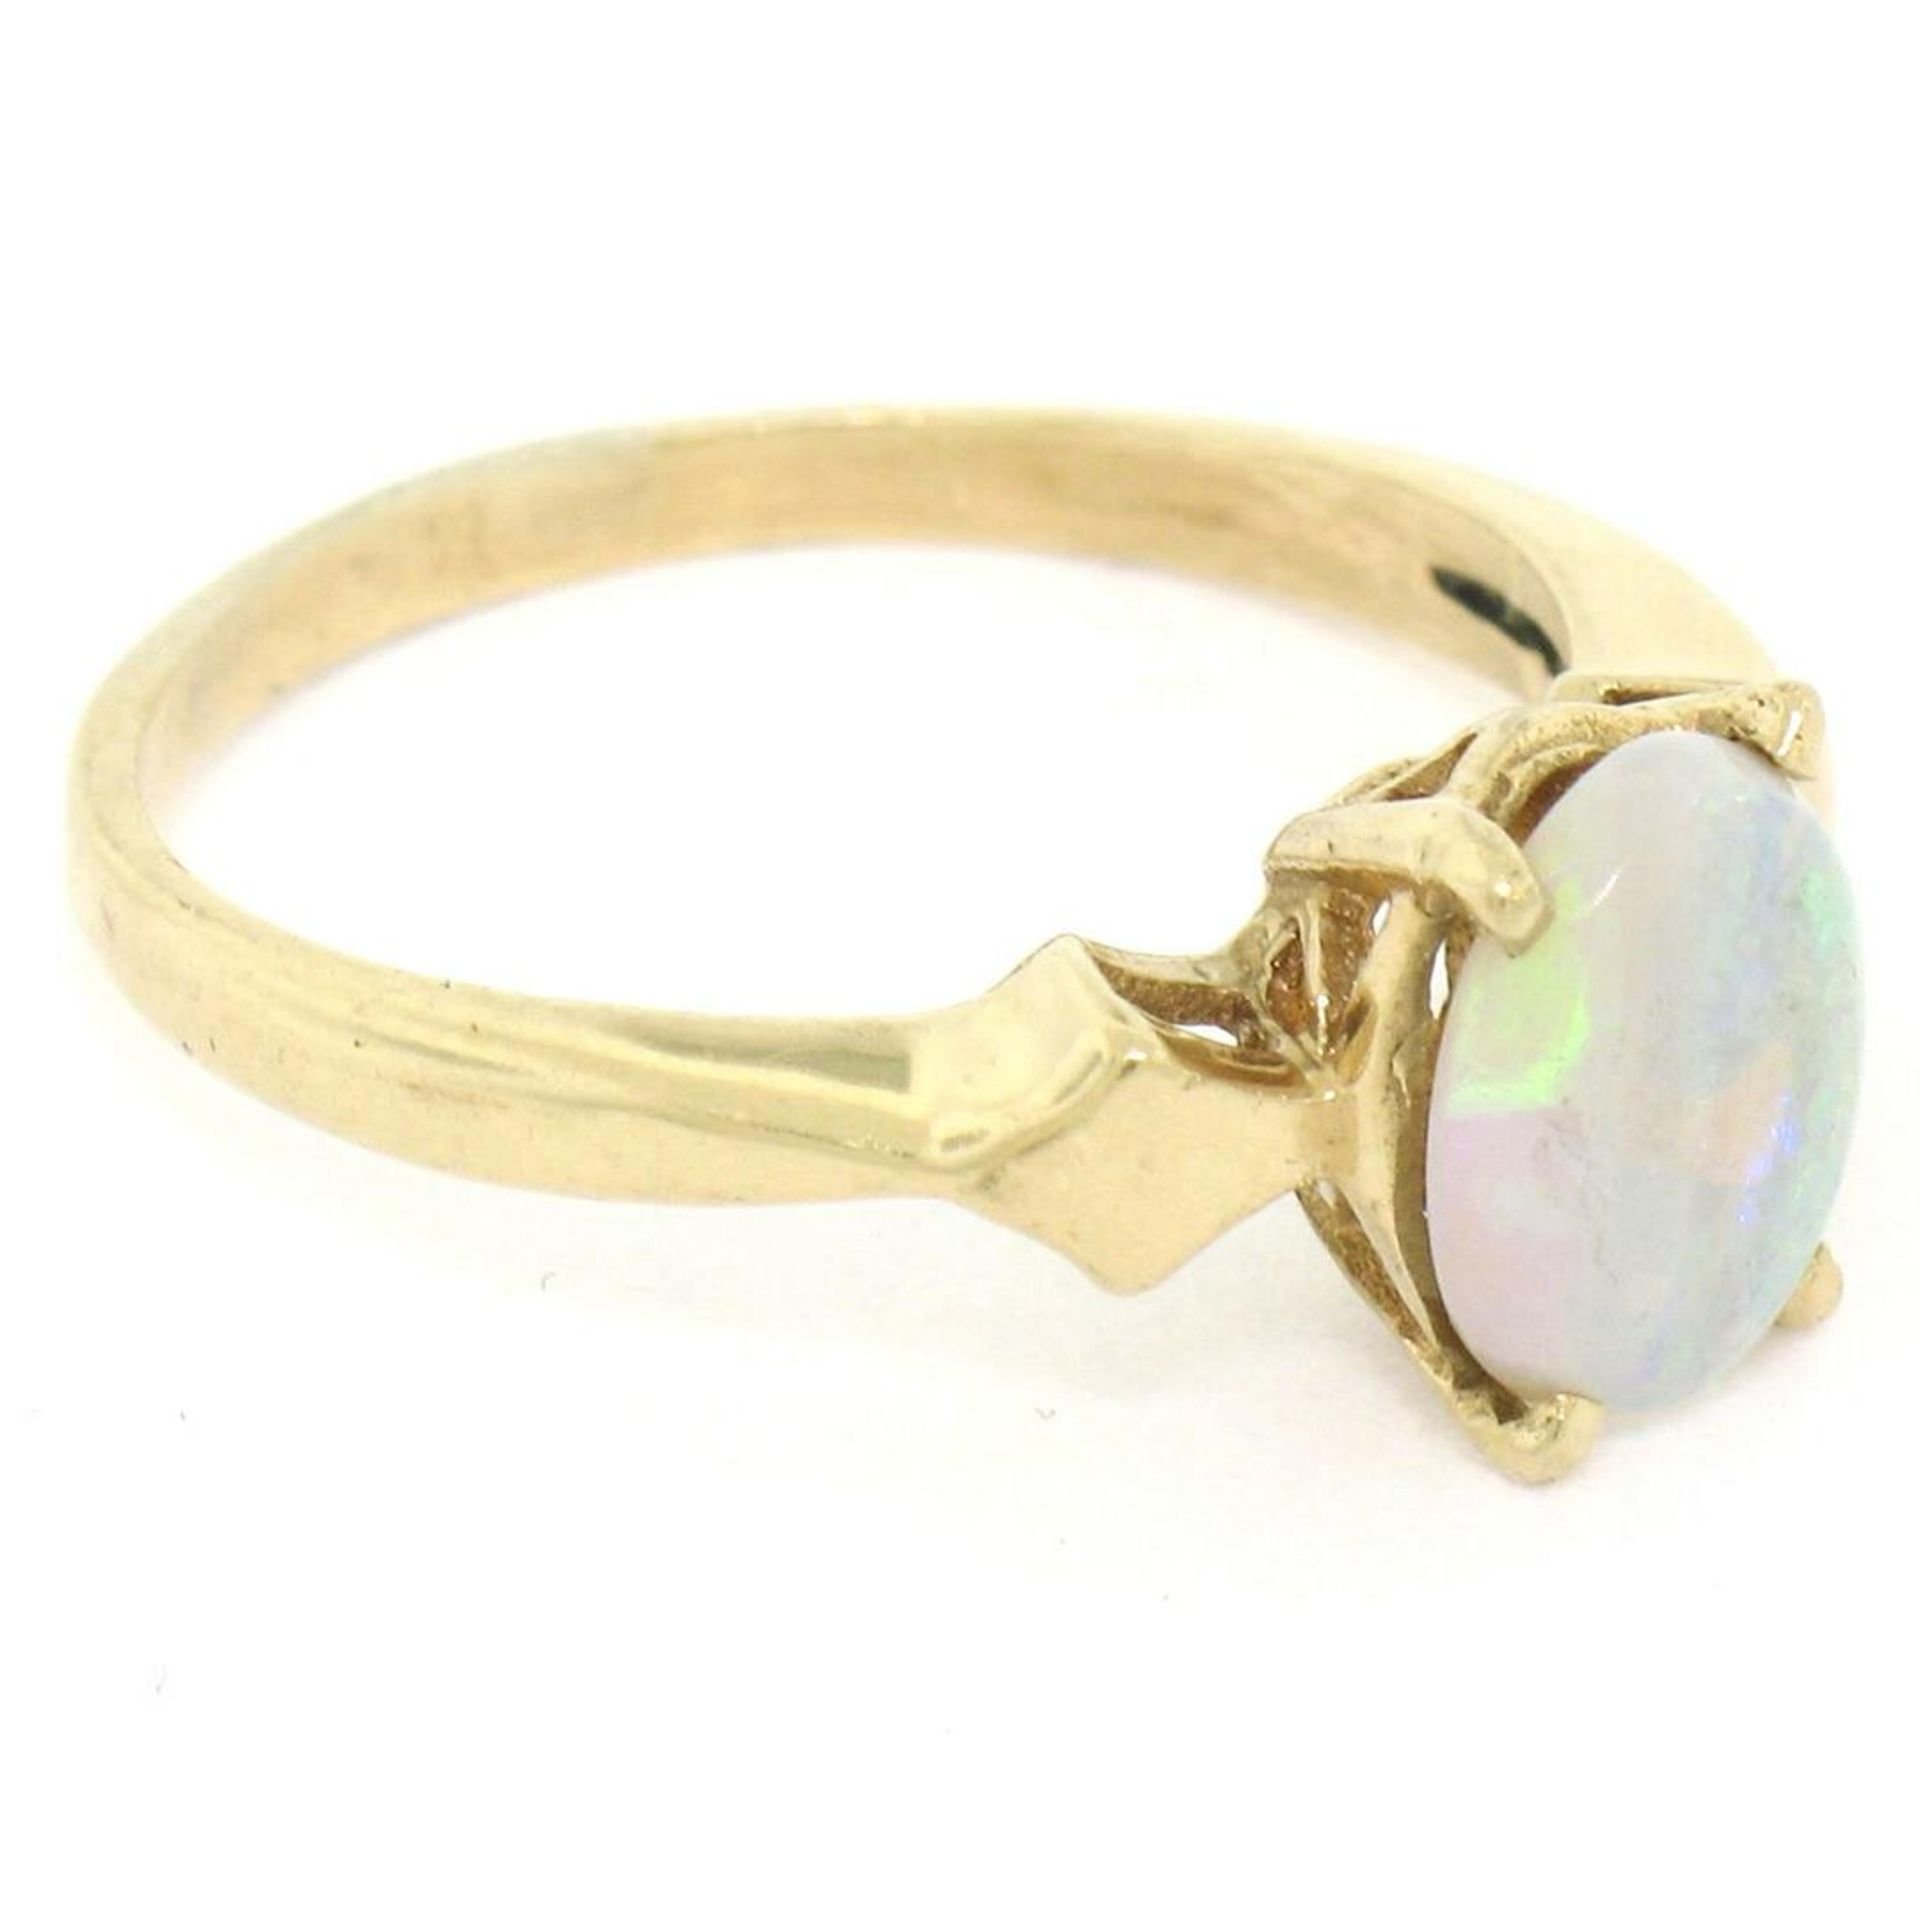 Vintage 14K Yellow Gold 0.65ct Petite Oval Cabochon Opal Solitaire Ring Size 6 - Image 4 of 9